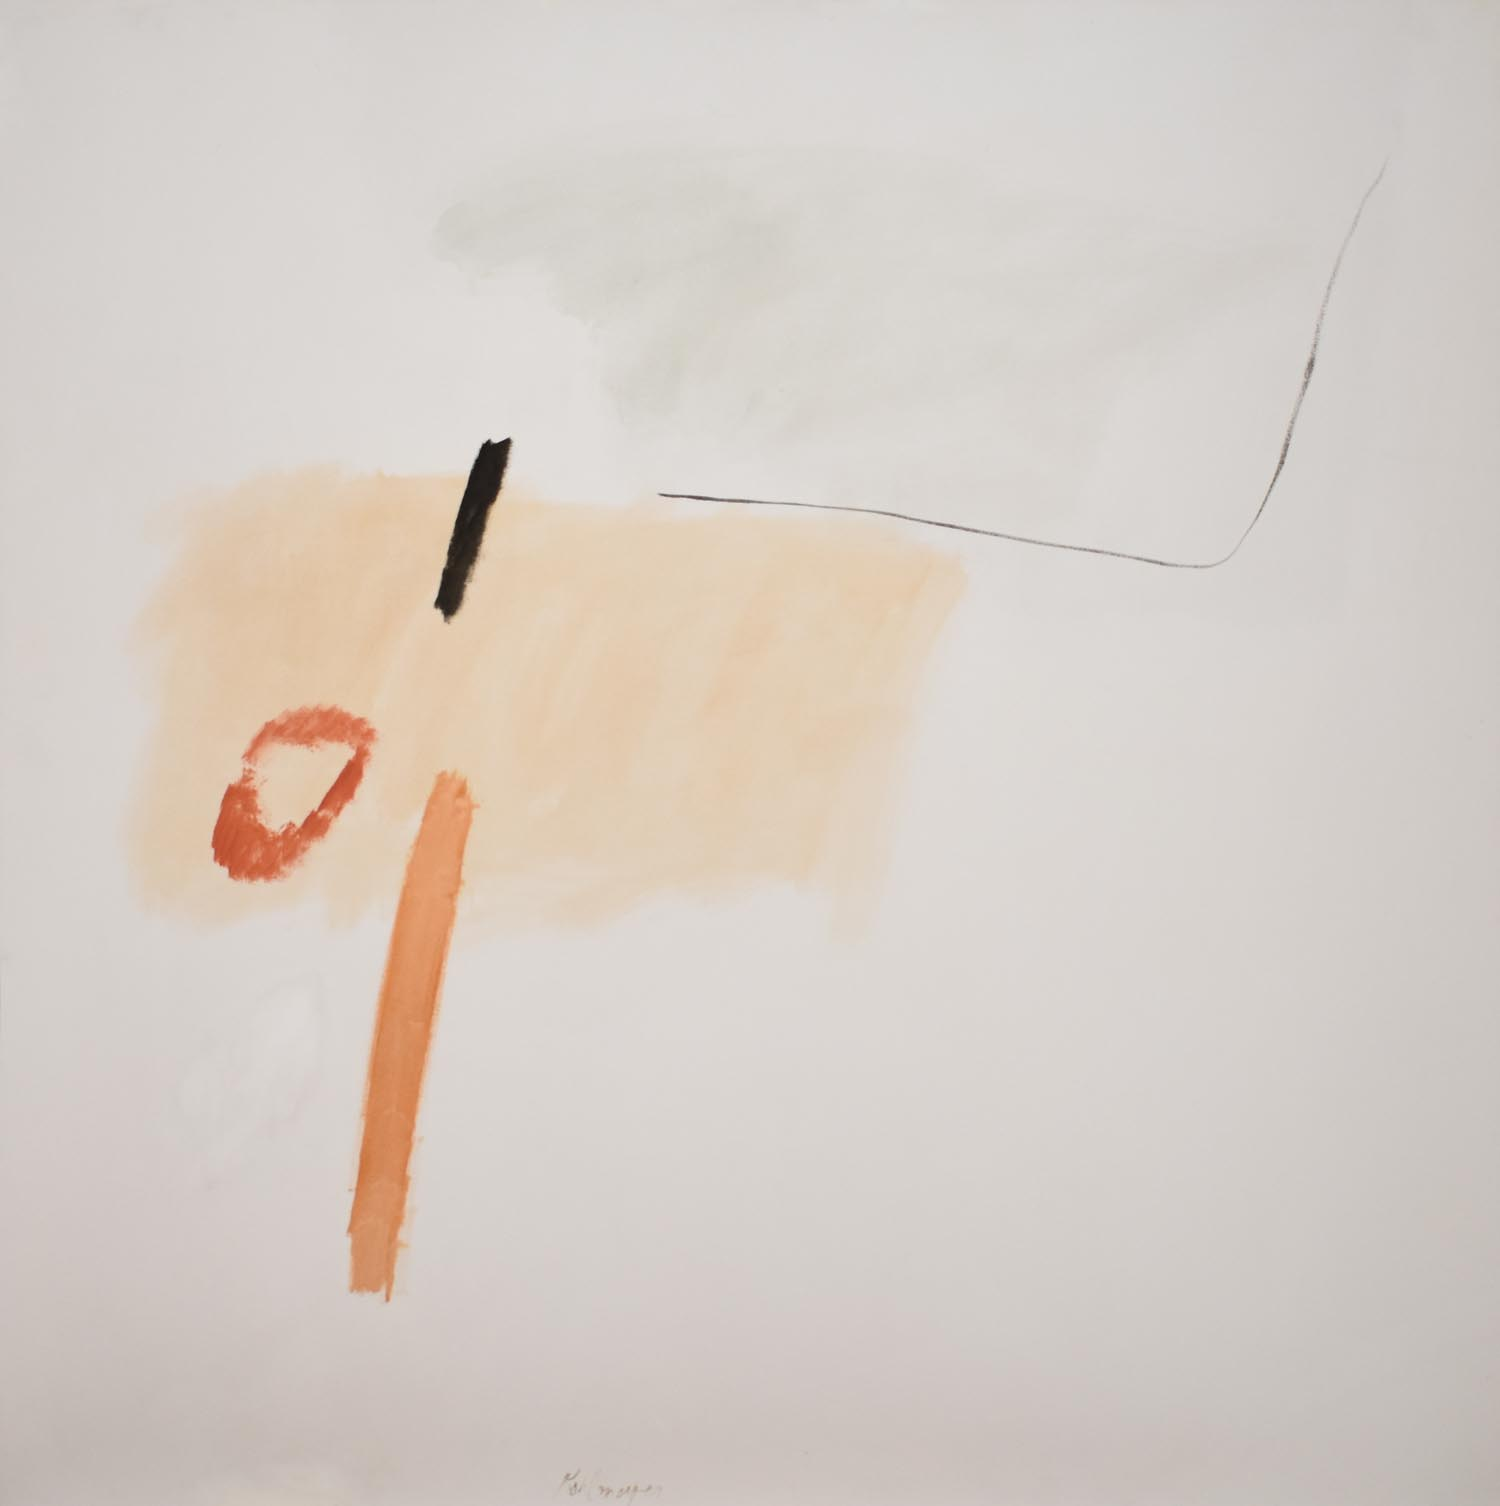 Tangential No. 1 , ca. 1965 Oil on canvas, signed lower middle, 56 3/4 × 55 5/8 in